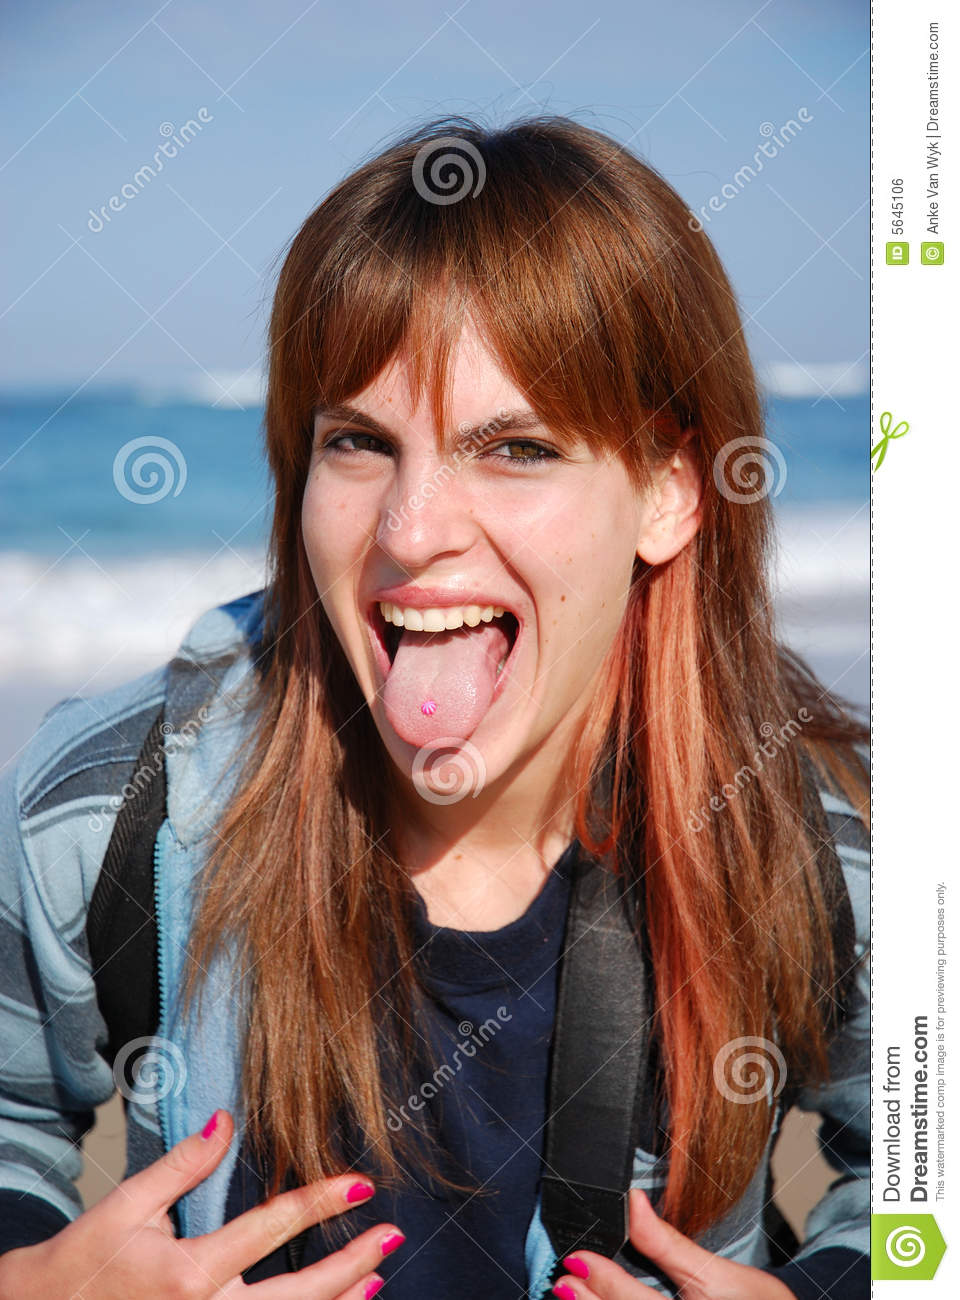 Girl With Tongue Piercing Stock Photo Image Of Mouth 5645106